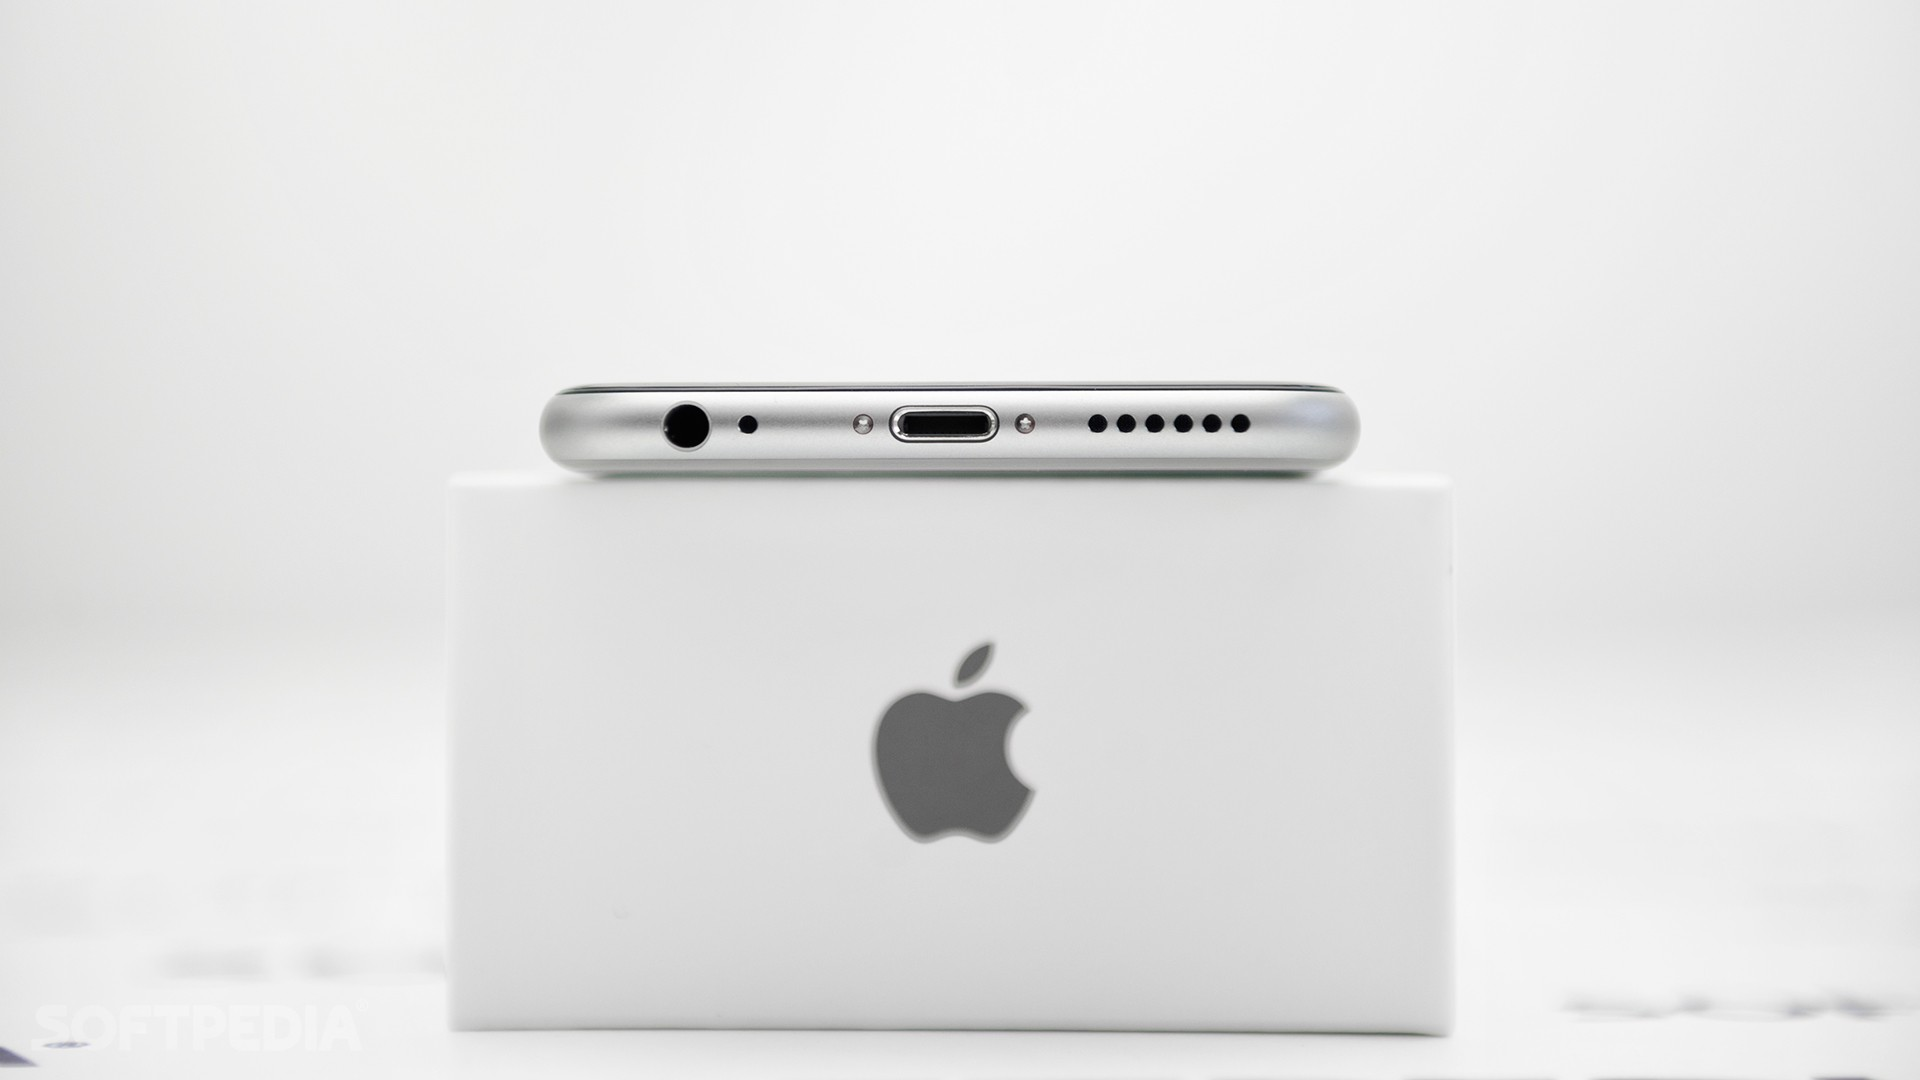 Forum on this topic: A Four Inch iPhone 6c Could Be , a-four-inch-iphone-6c-could-be/